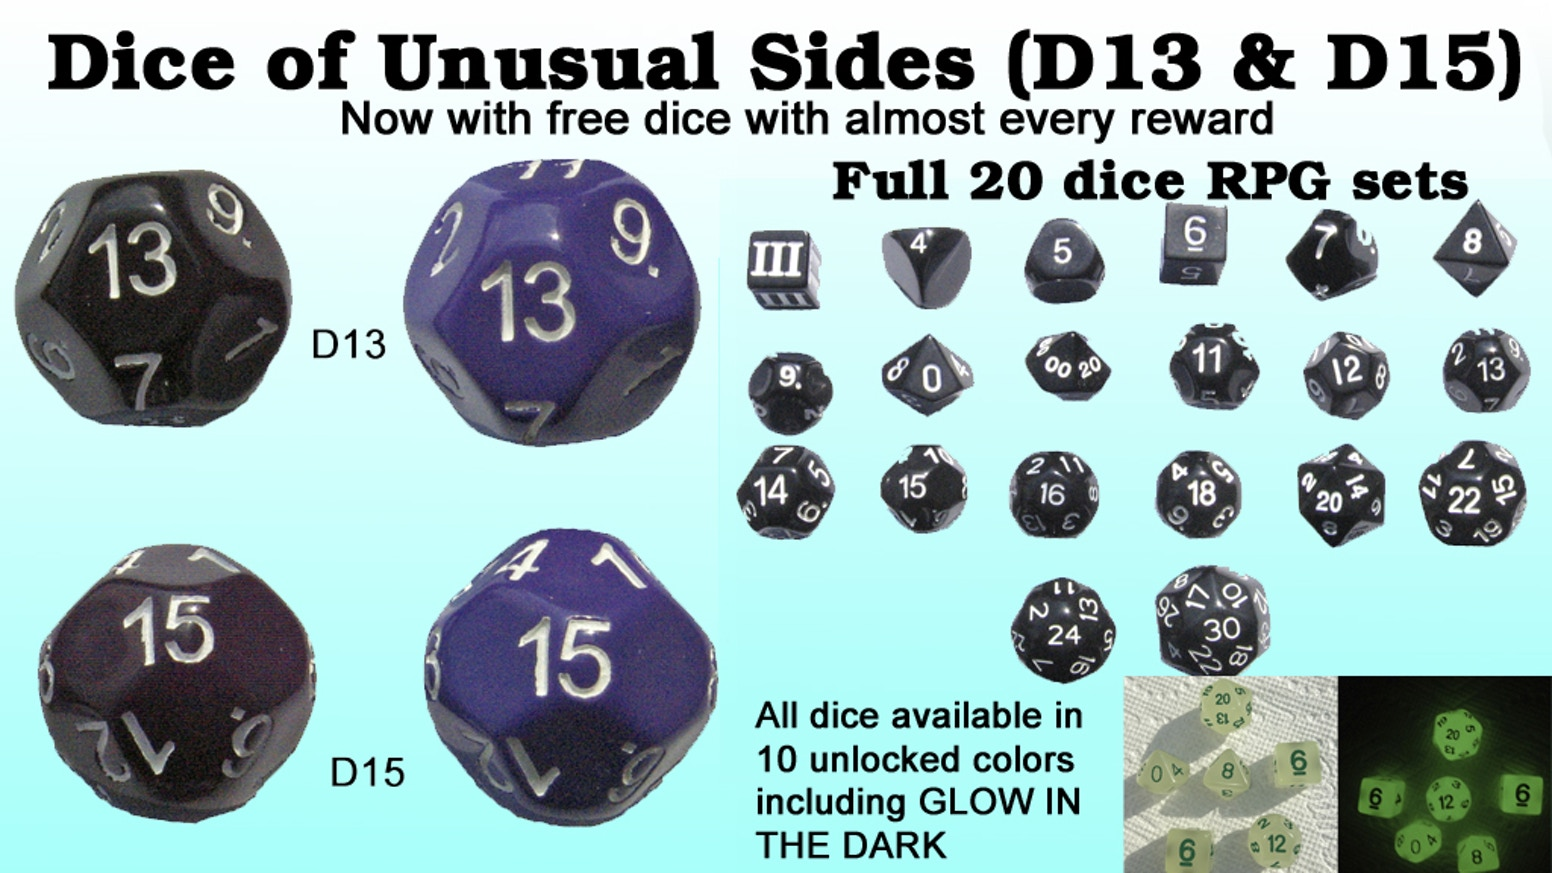 Unusual 13 and 15 sided dice along with full 20 die sets of dice of unusual sides approved for use with DCC & other step dice RPGs.